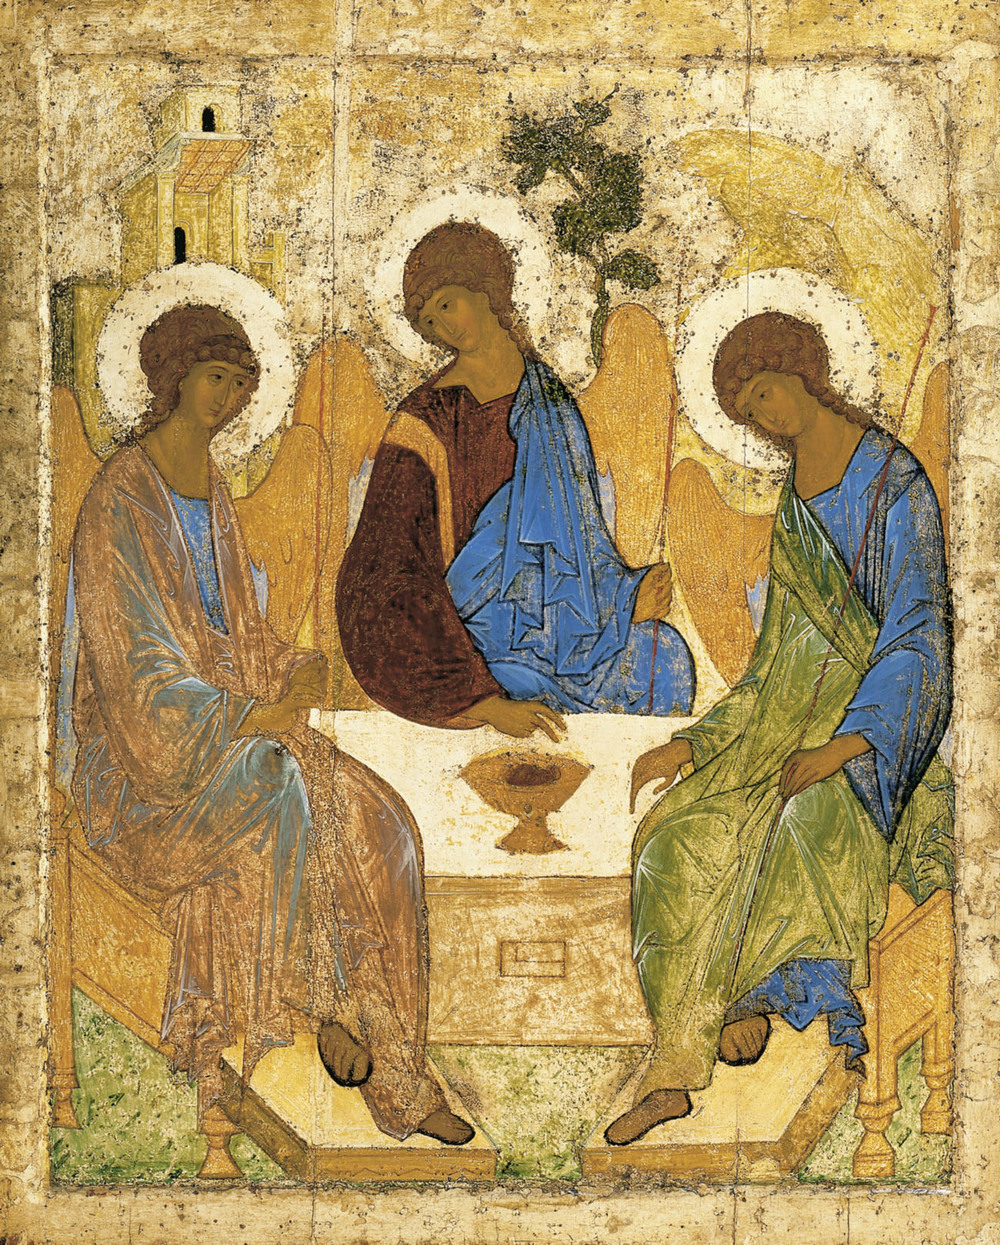 Andrei Rublev's Trinity [c. 1425]